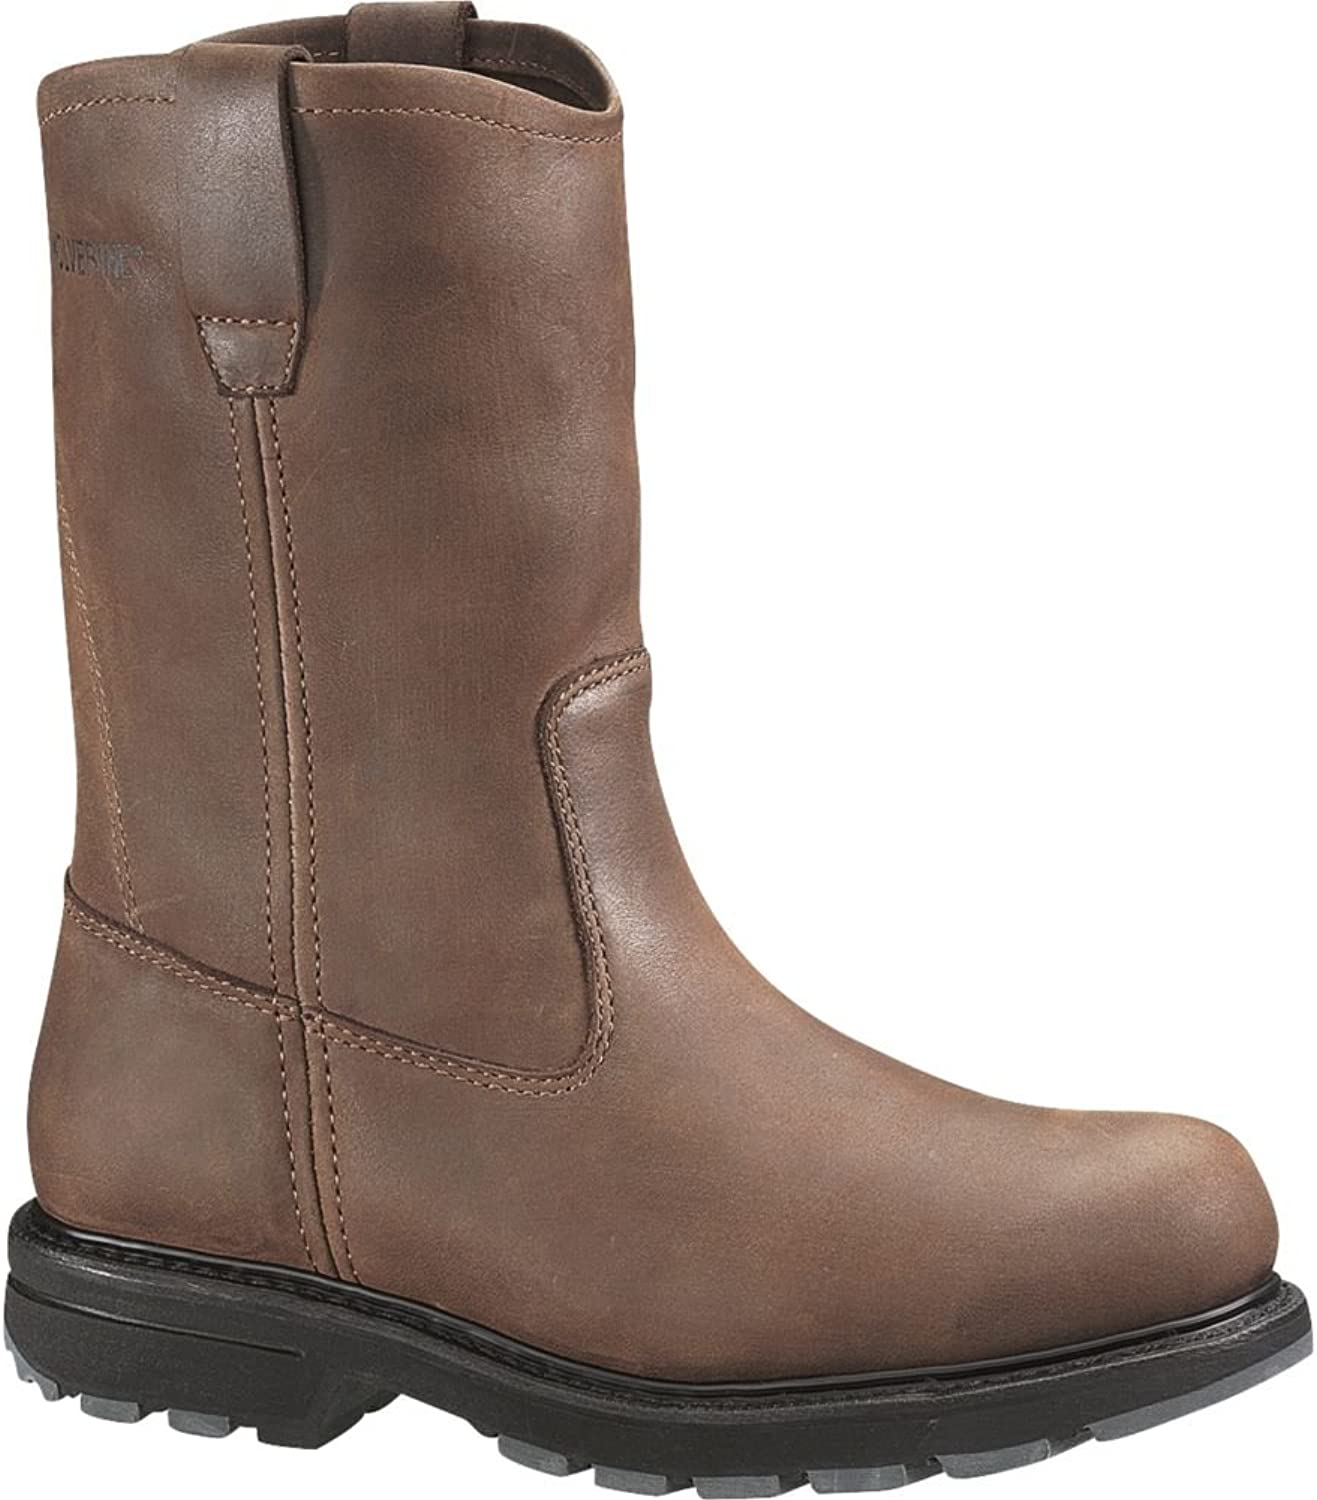 Wolverine Men's Nubuck Wellington Pull-On Work Boot Steel Toe Brown US